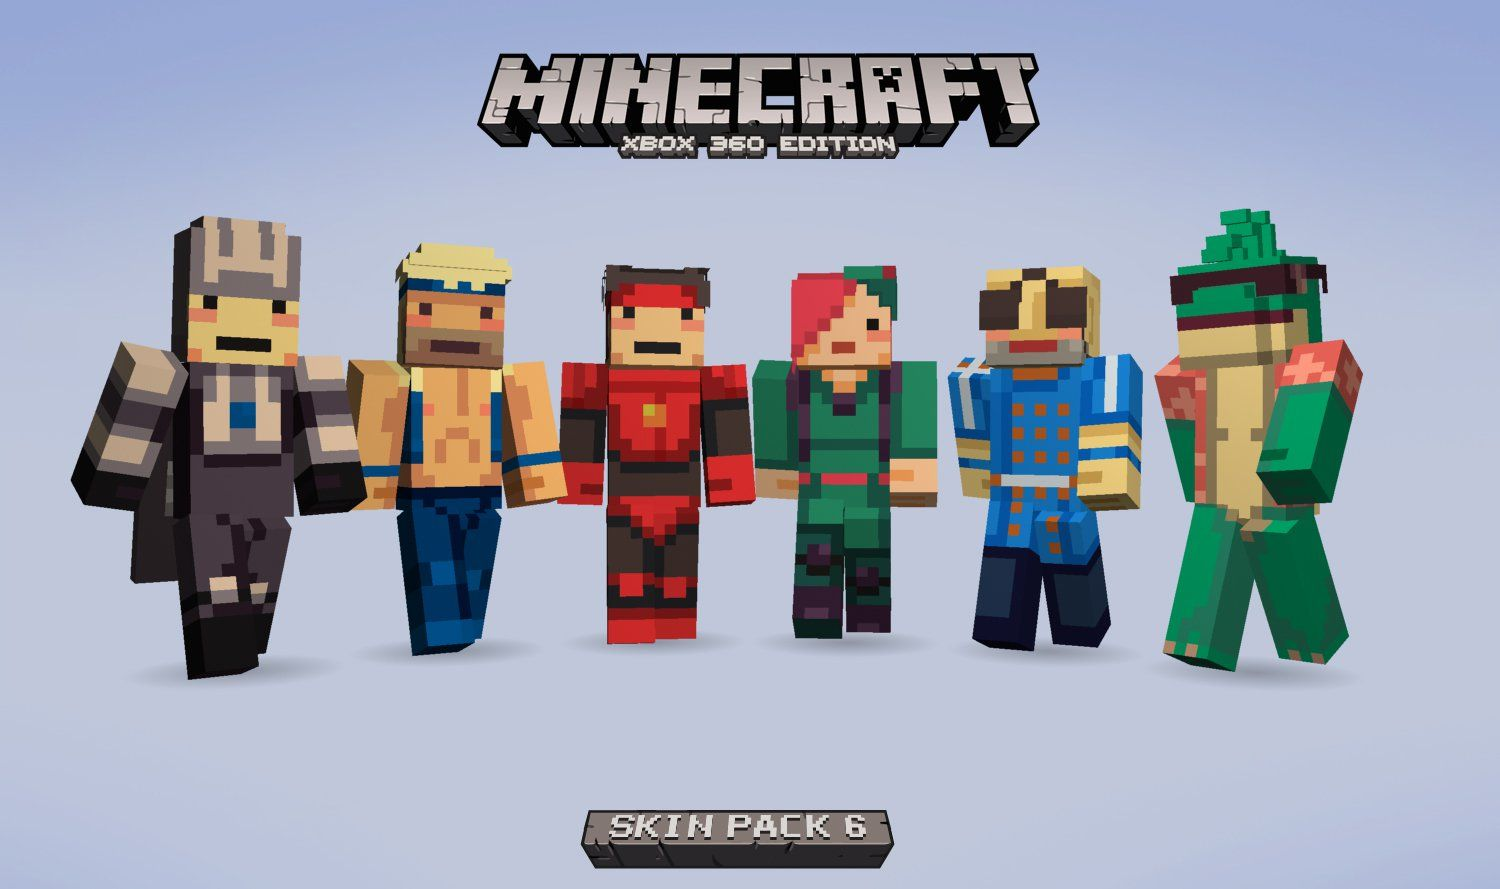 minecraft characters | PIXEL ART | Pinterest | Minecraft ... for Minecraft Characters Pictures  284dqh